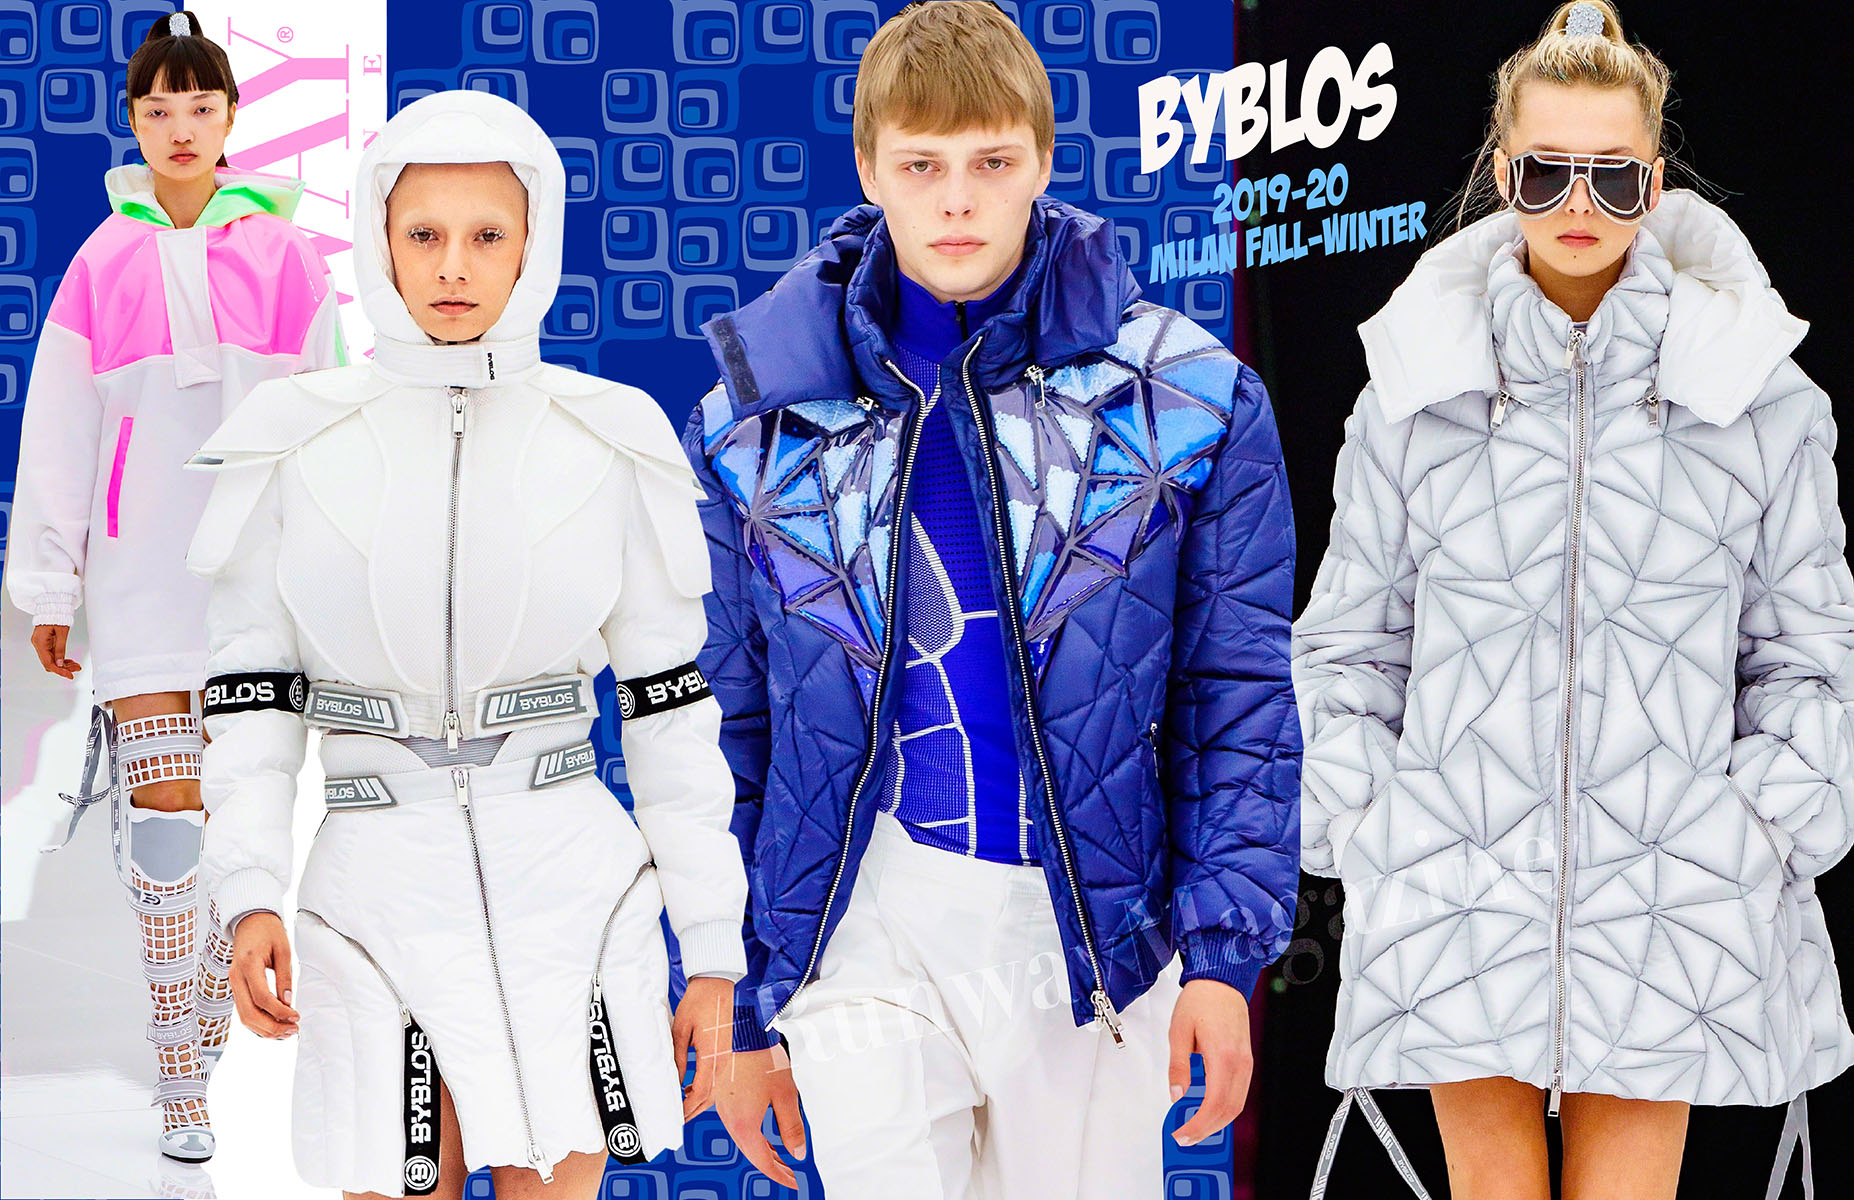 BYBLOS Milan Fall-Winter 2019-2020 by Runway Magazine